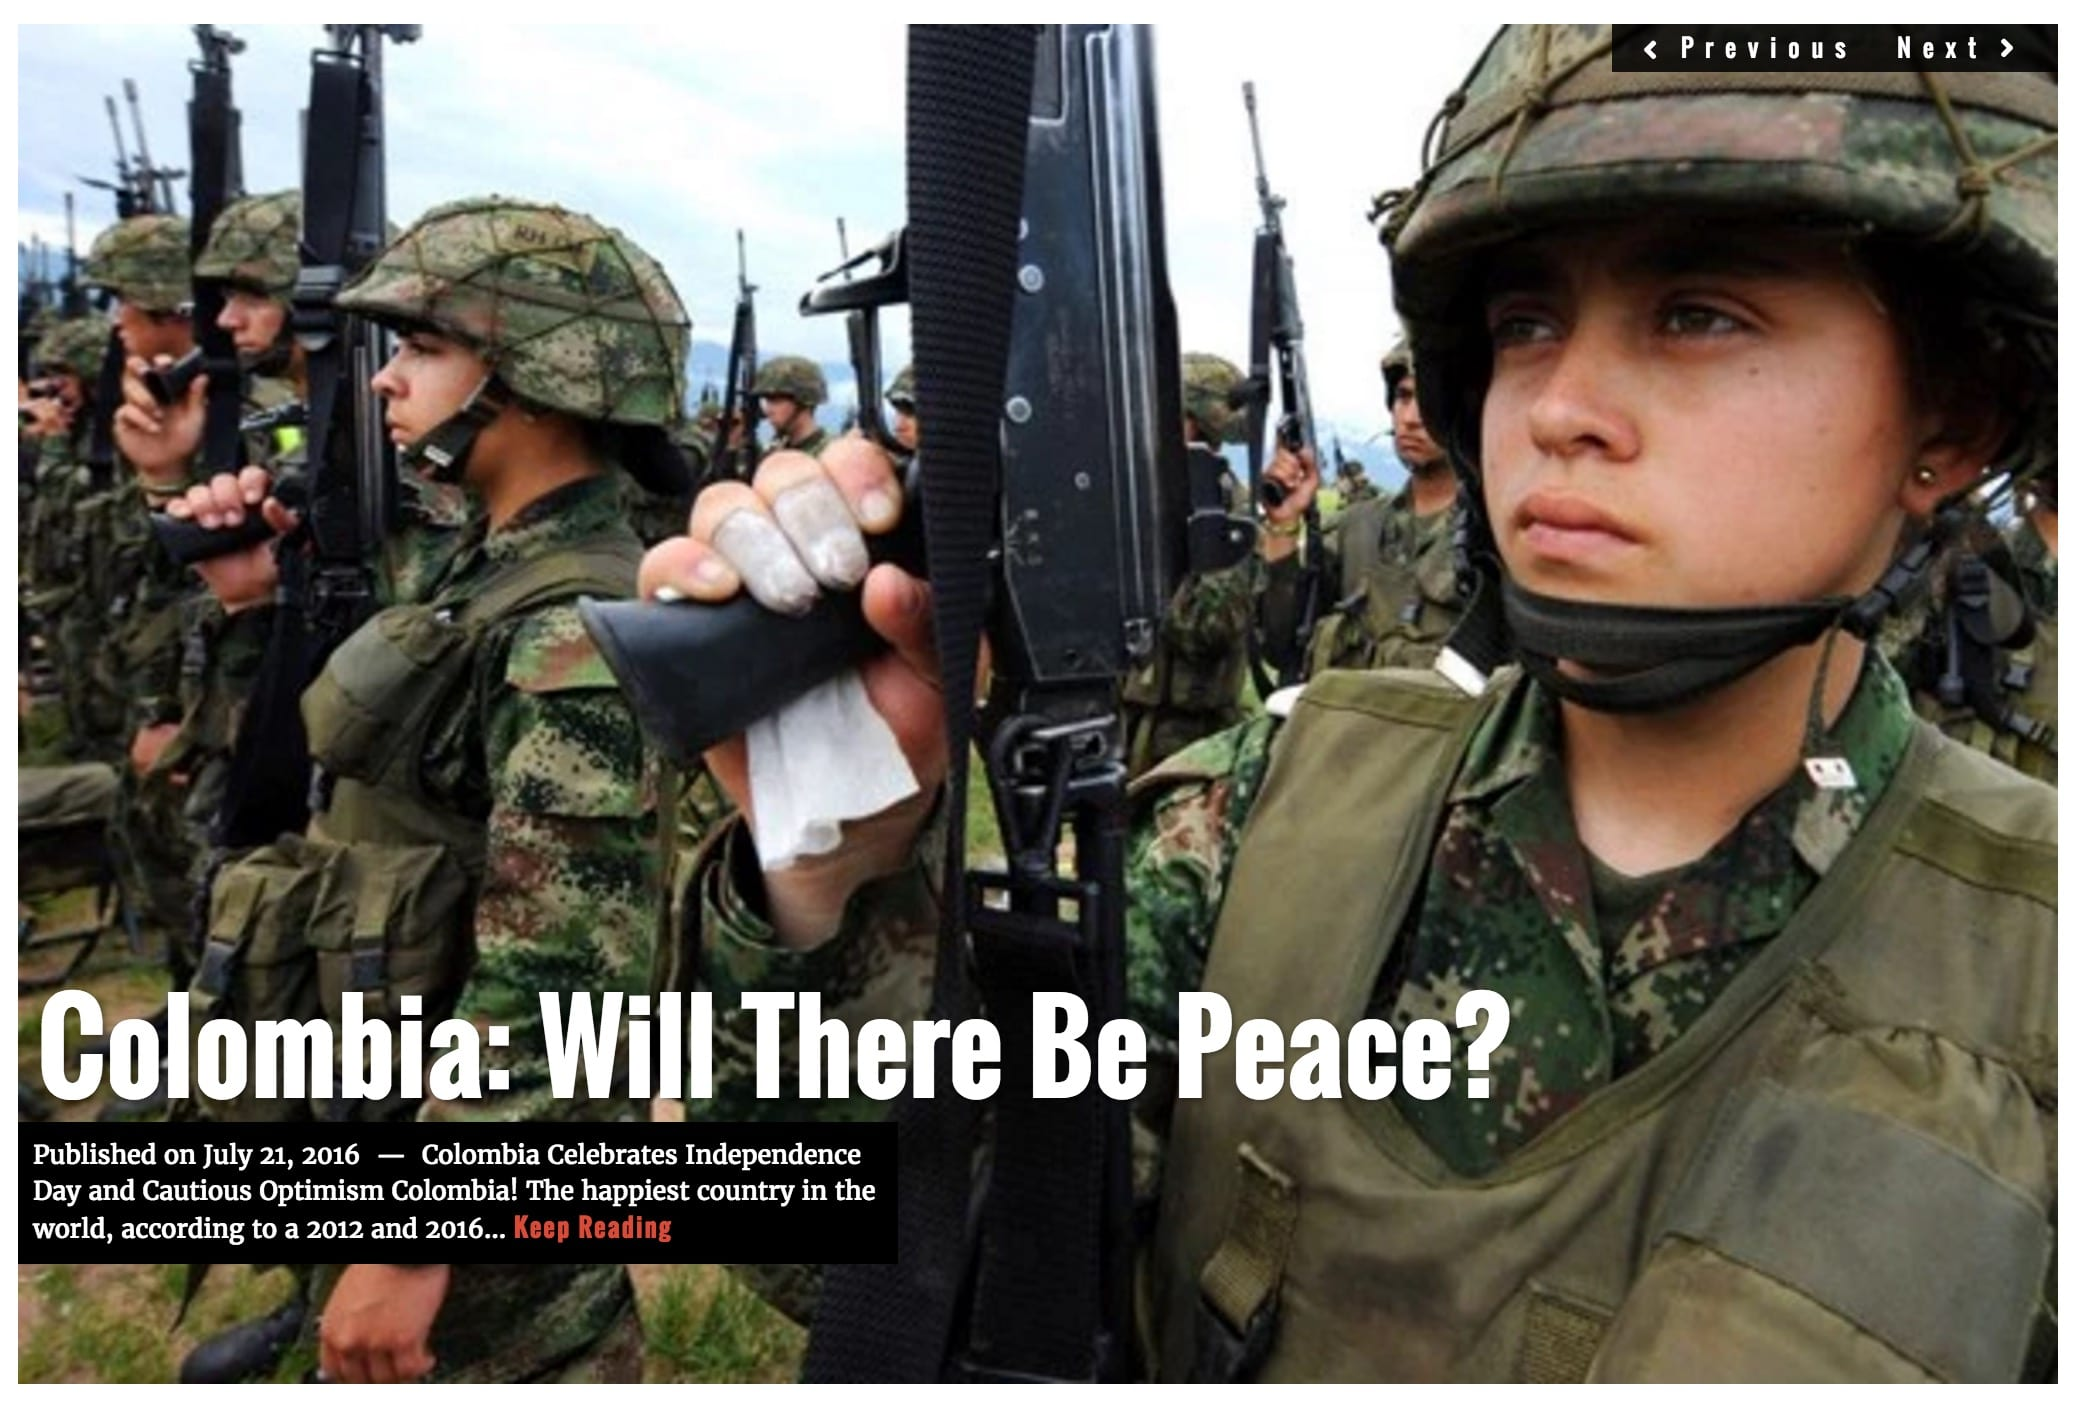 Image Lima Charlie News Headline Colombia Peace JUL 20 2016